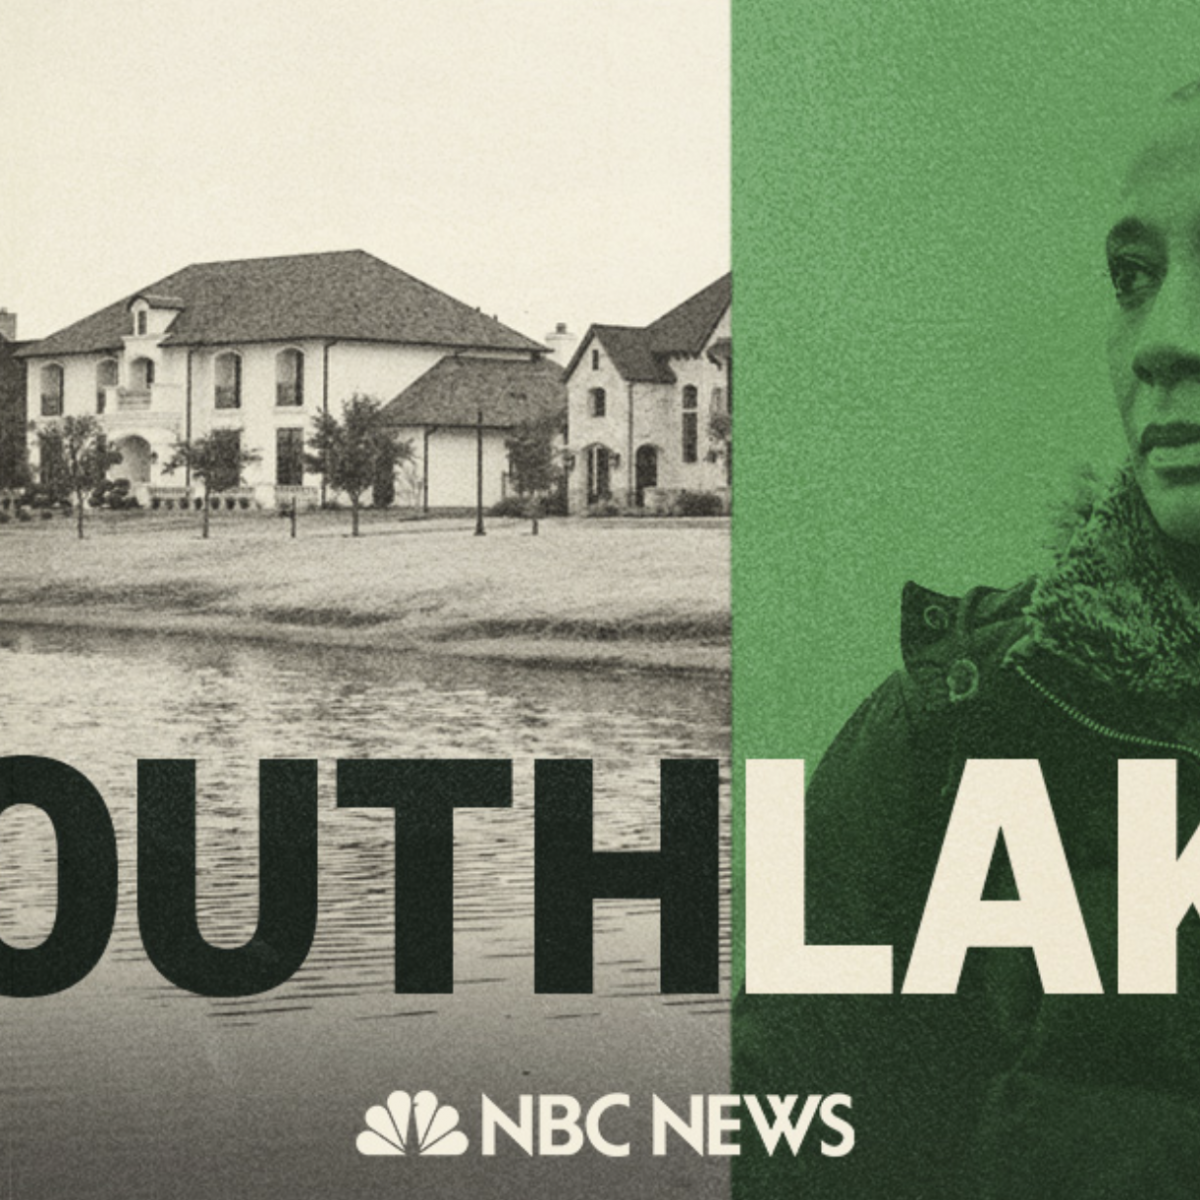 """This Texas Town Has Been at the Center of Controversy Over Teaching Racism in School. The New """"Southlake"""" Podcast from NBC News Explores the Firestorm."""